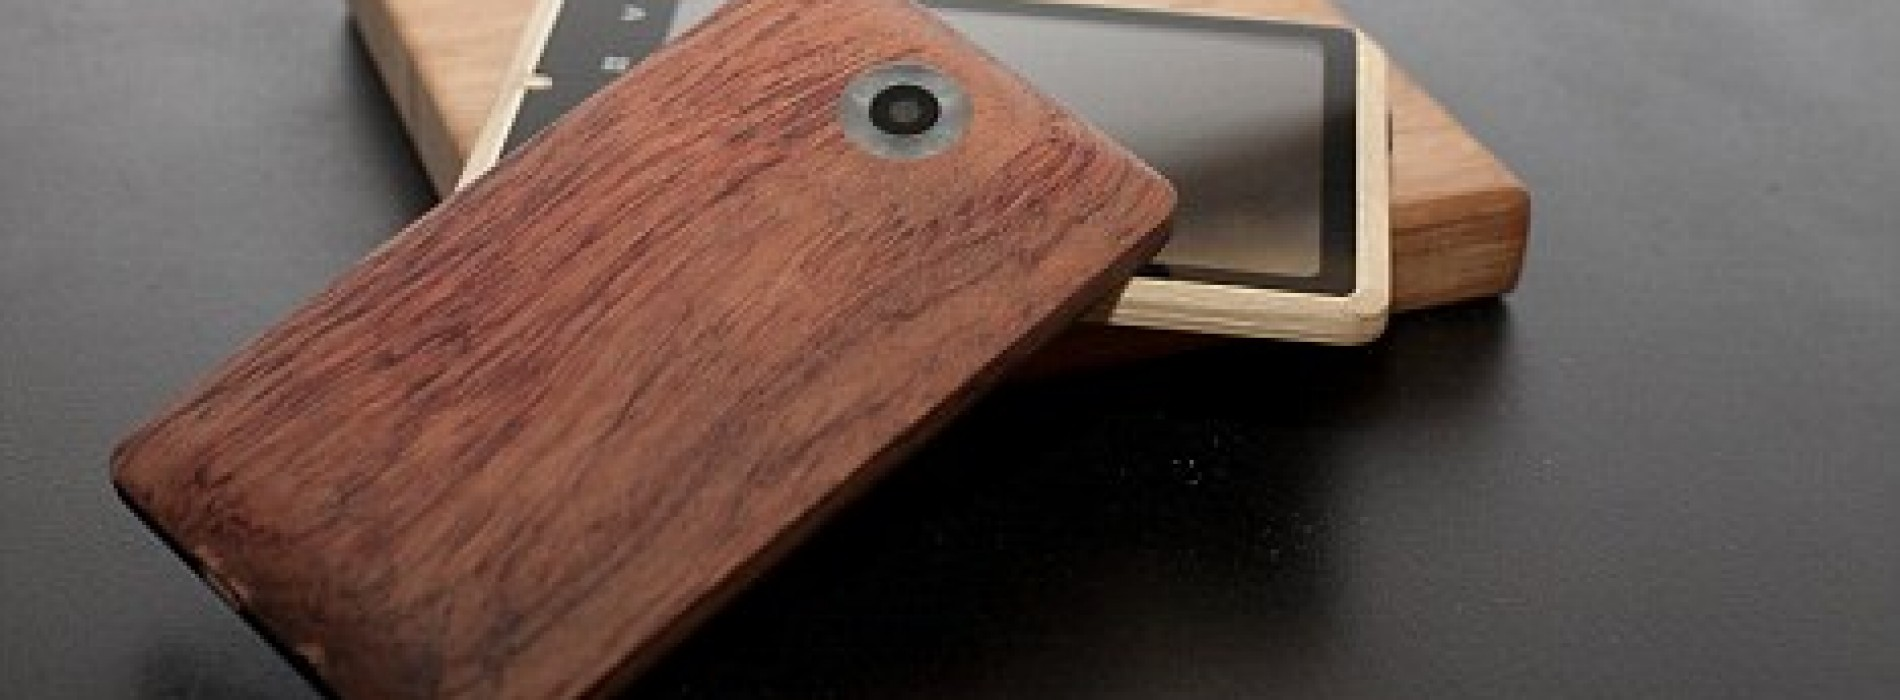 ADzero to usher in new era of bamboo smartphones?